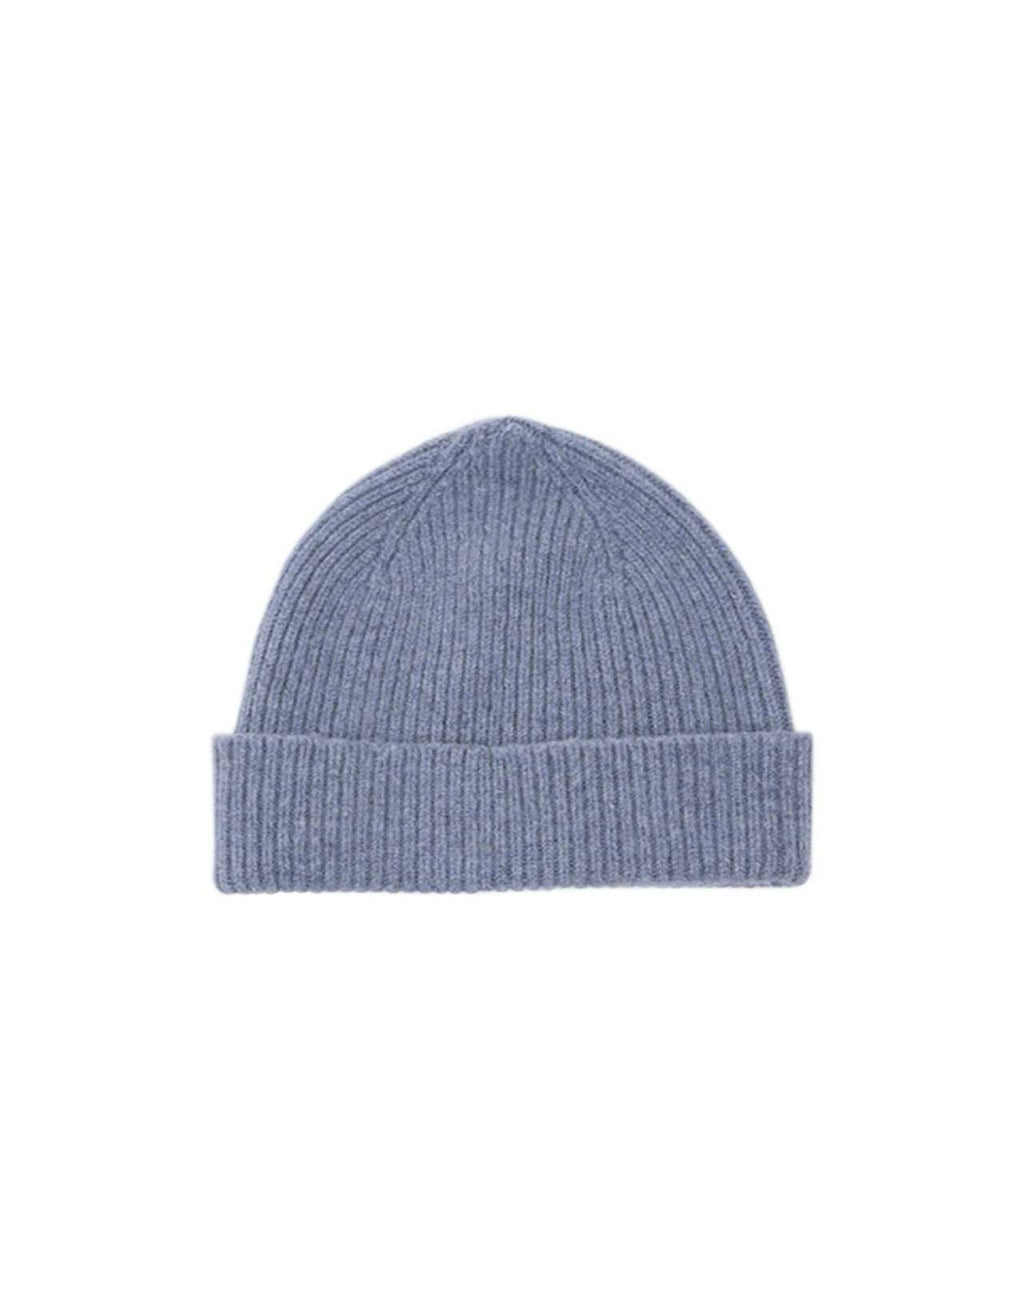 Bonnet Barra Robert Mackie couleur Denim